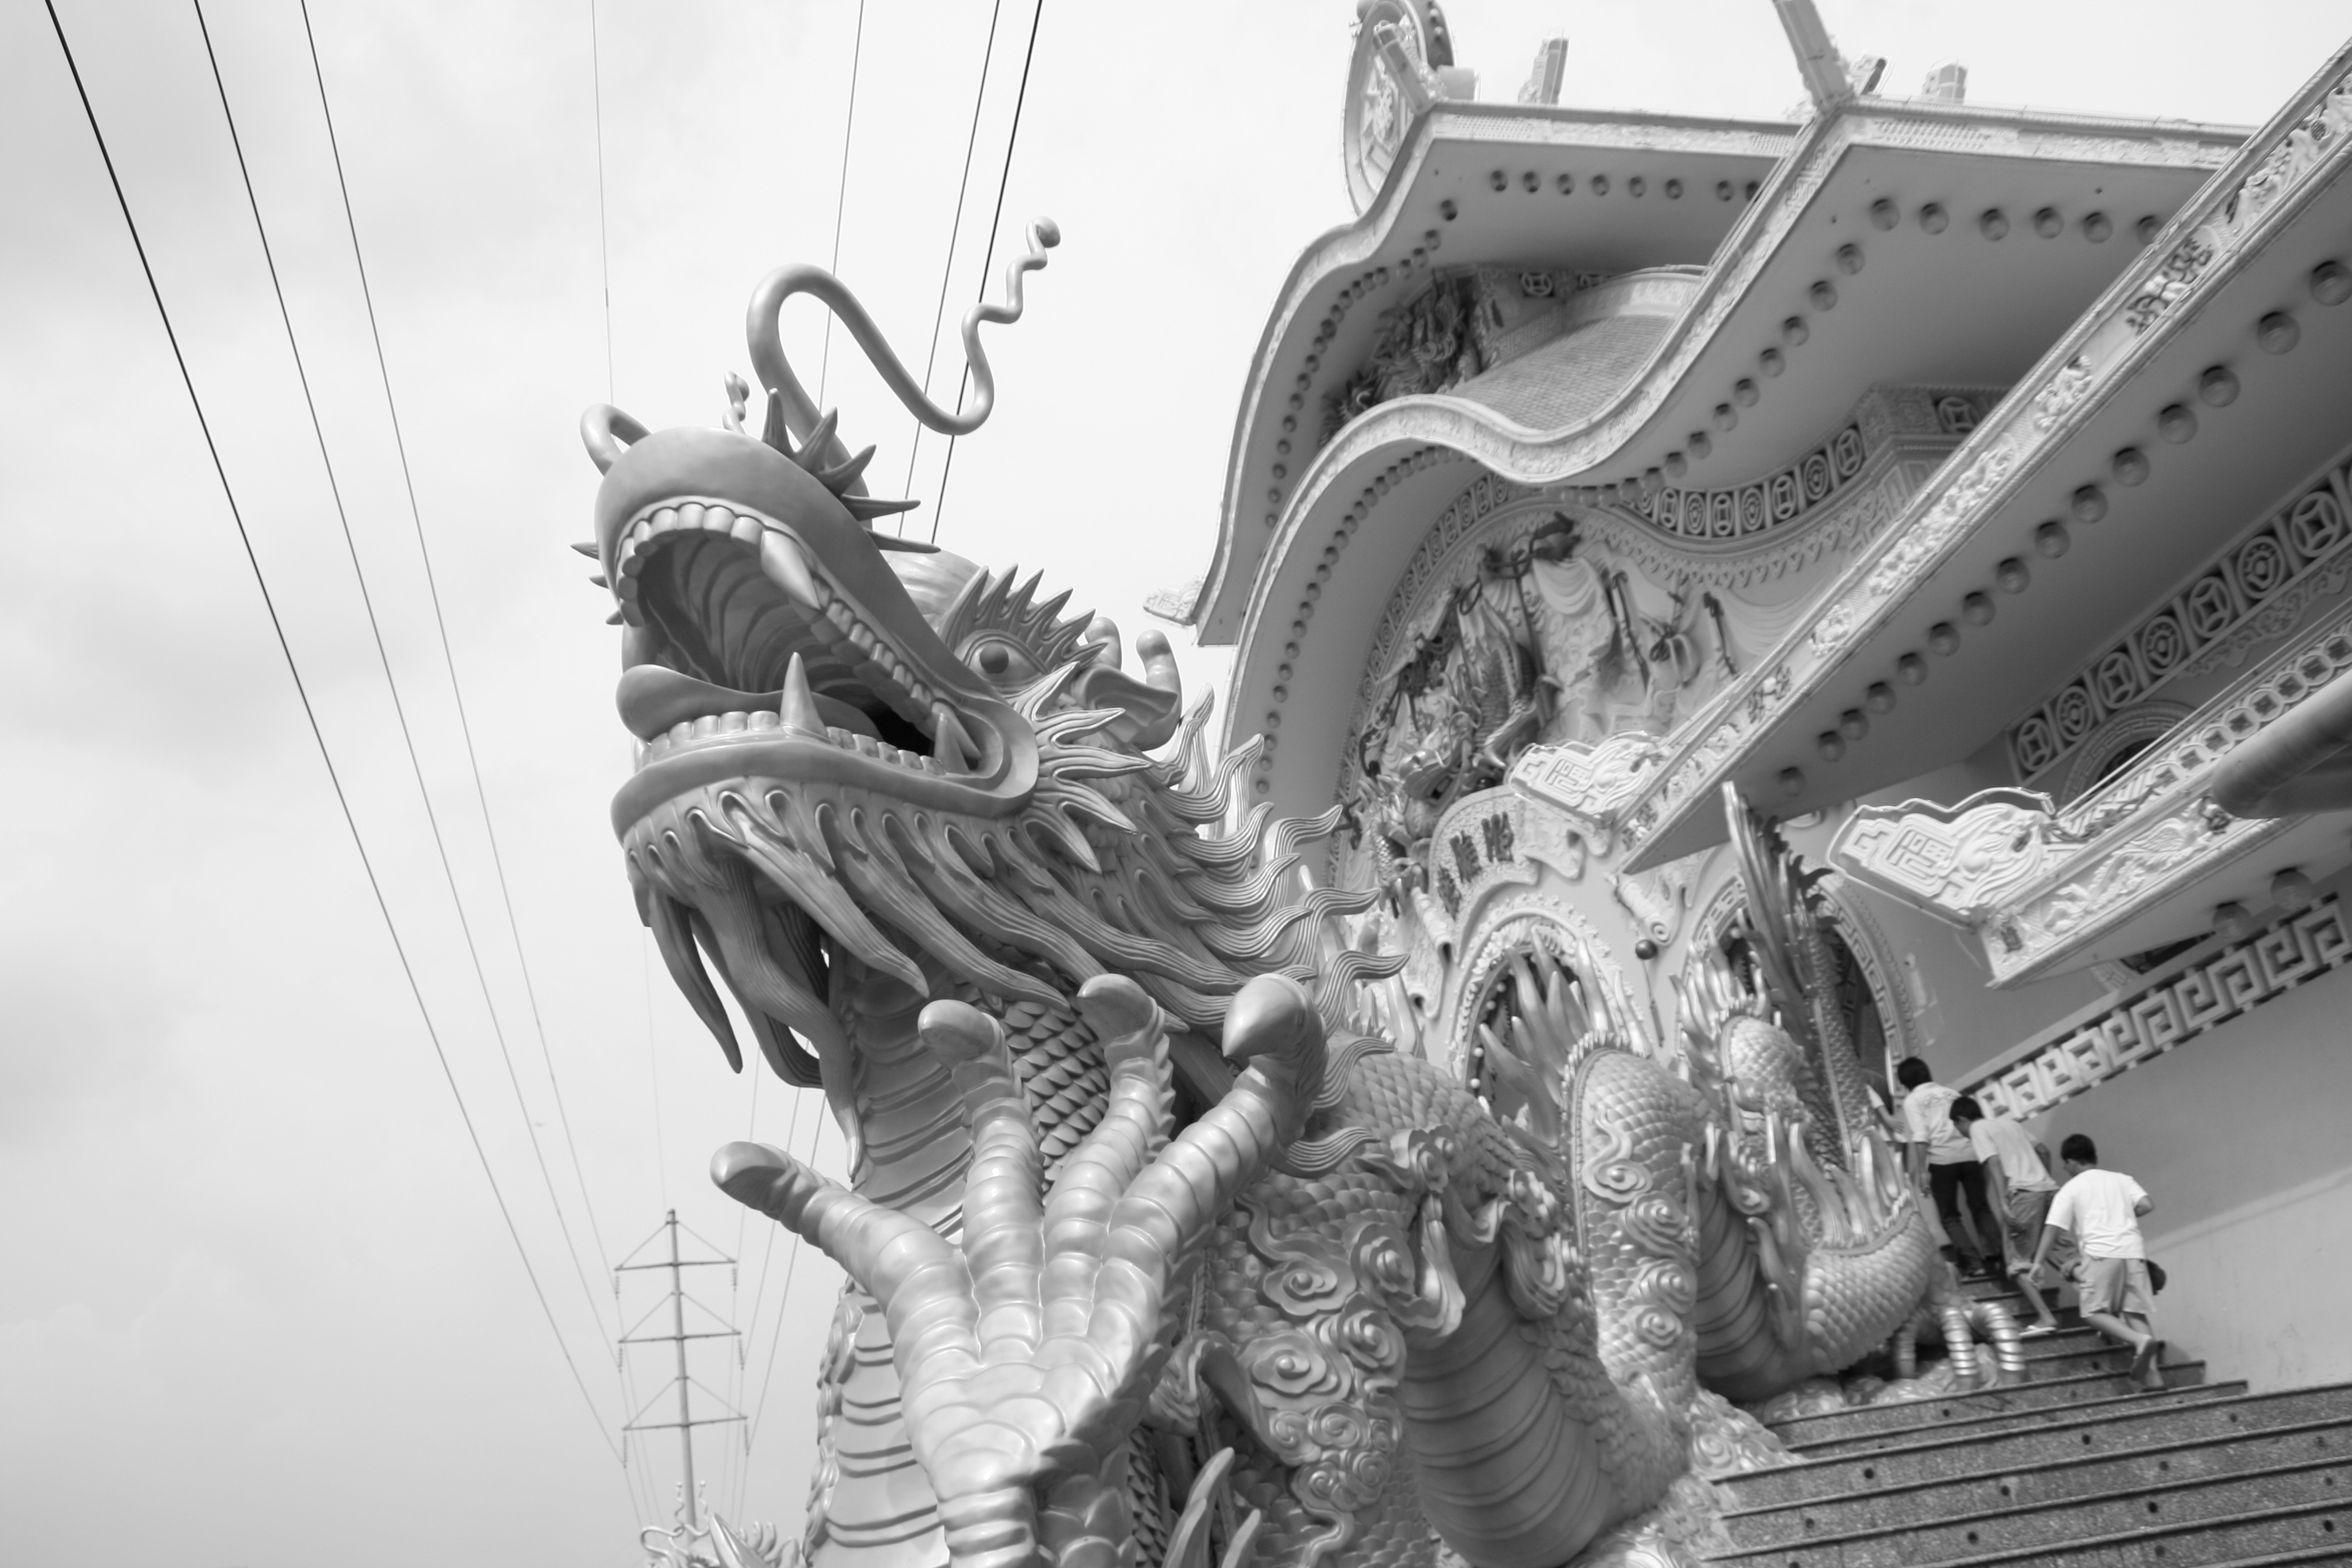 Vietnamese Dragon: File:Vietnam Dragon.jpg